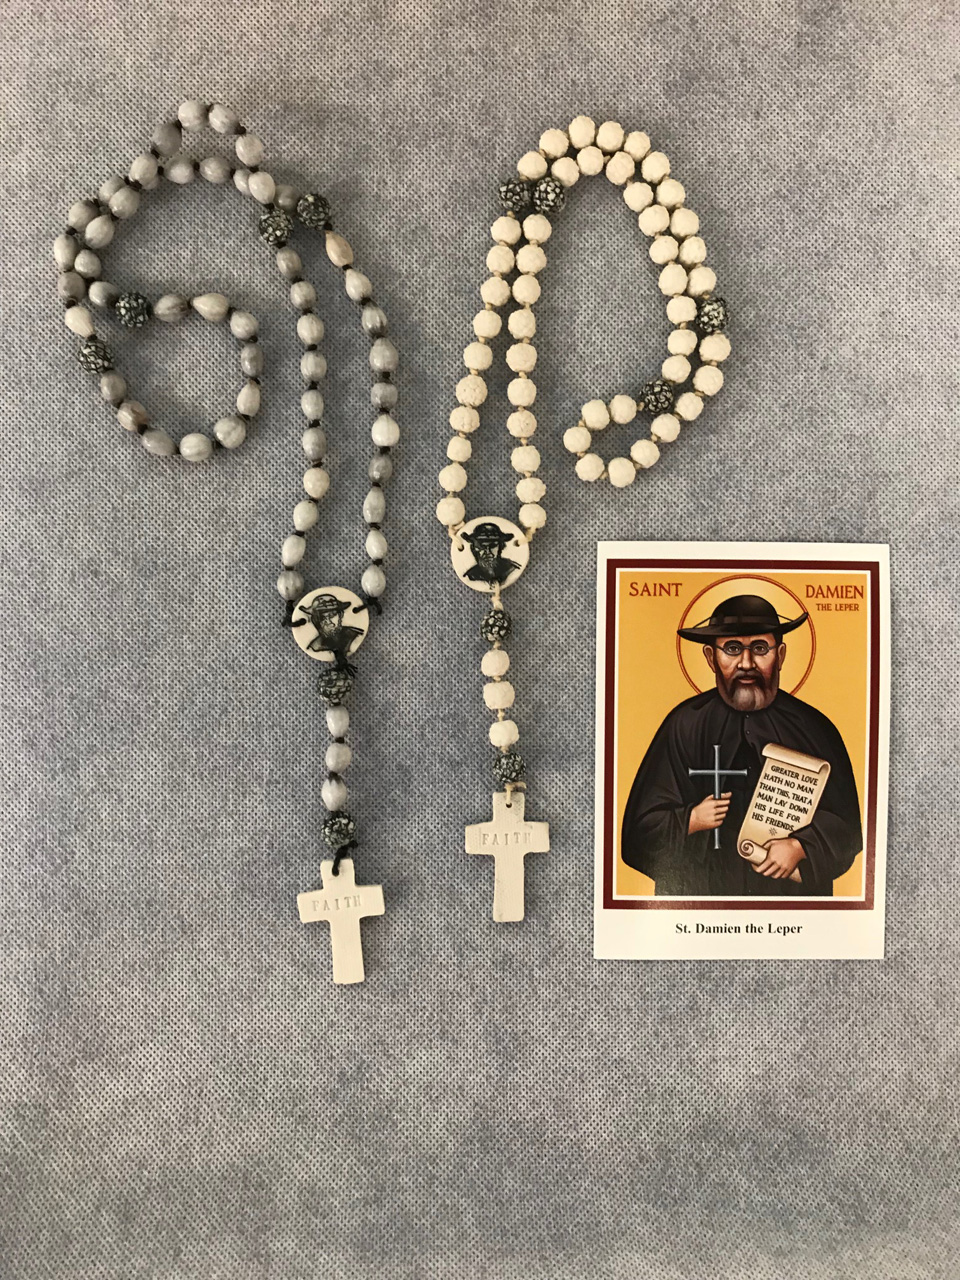 Job's Tears and Porcelain Saint Damien Rosaries